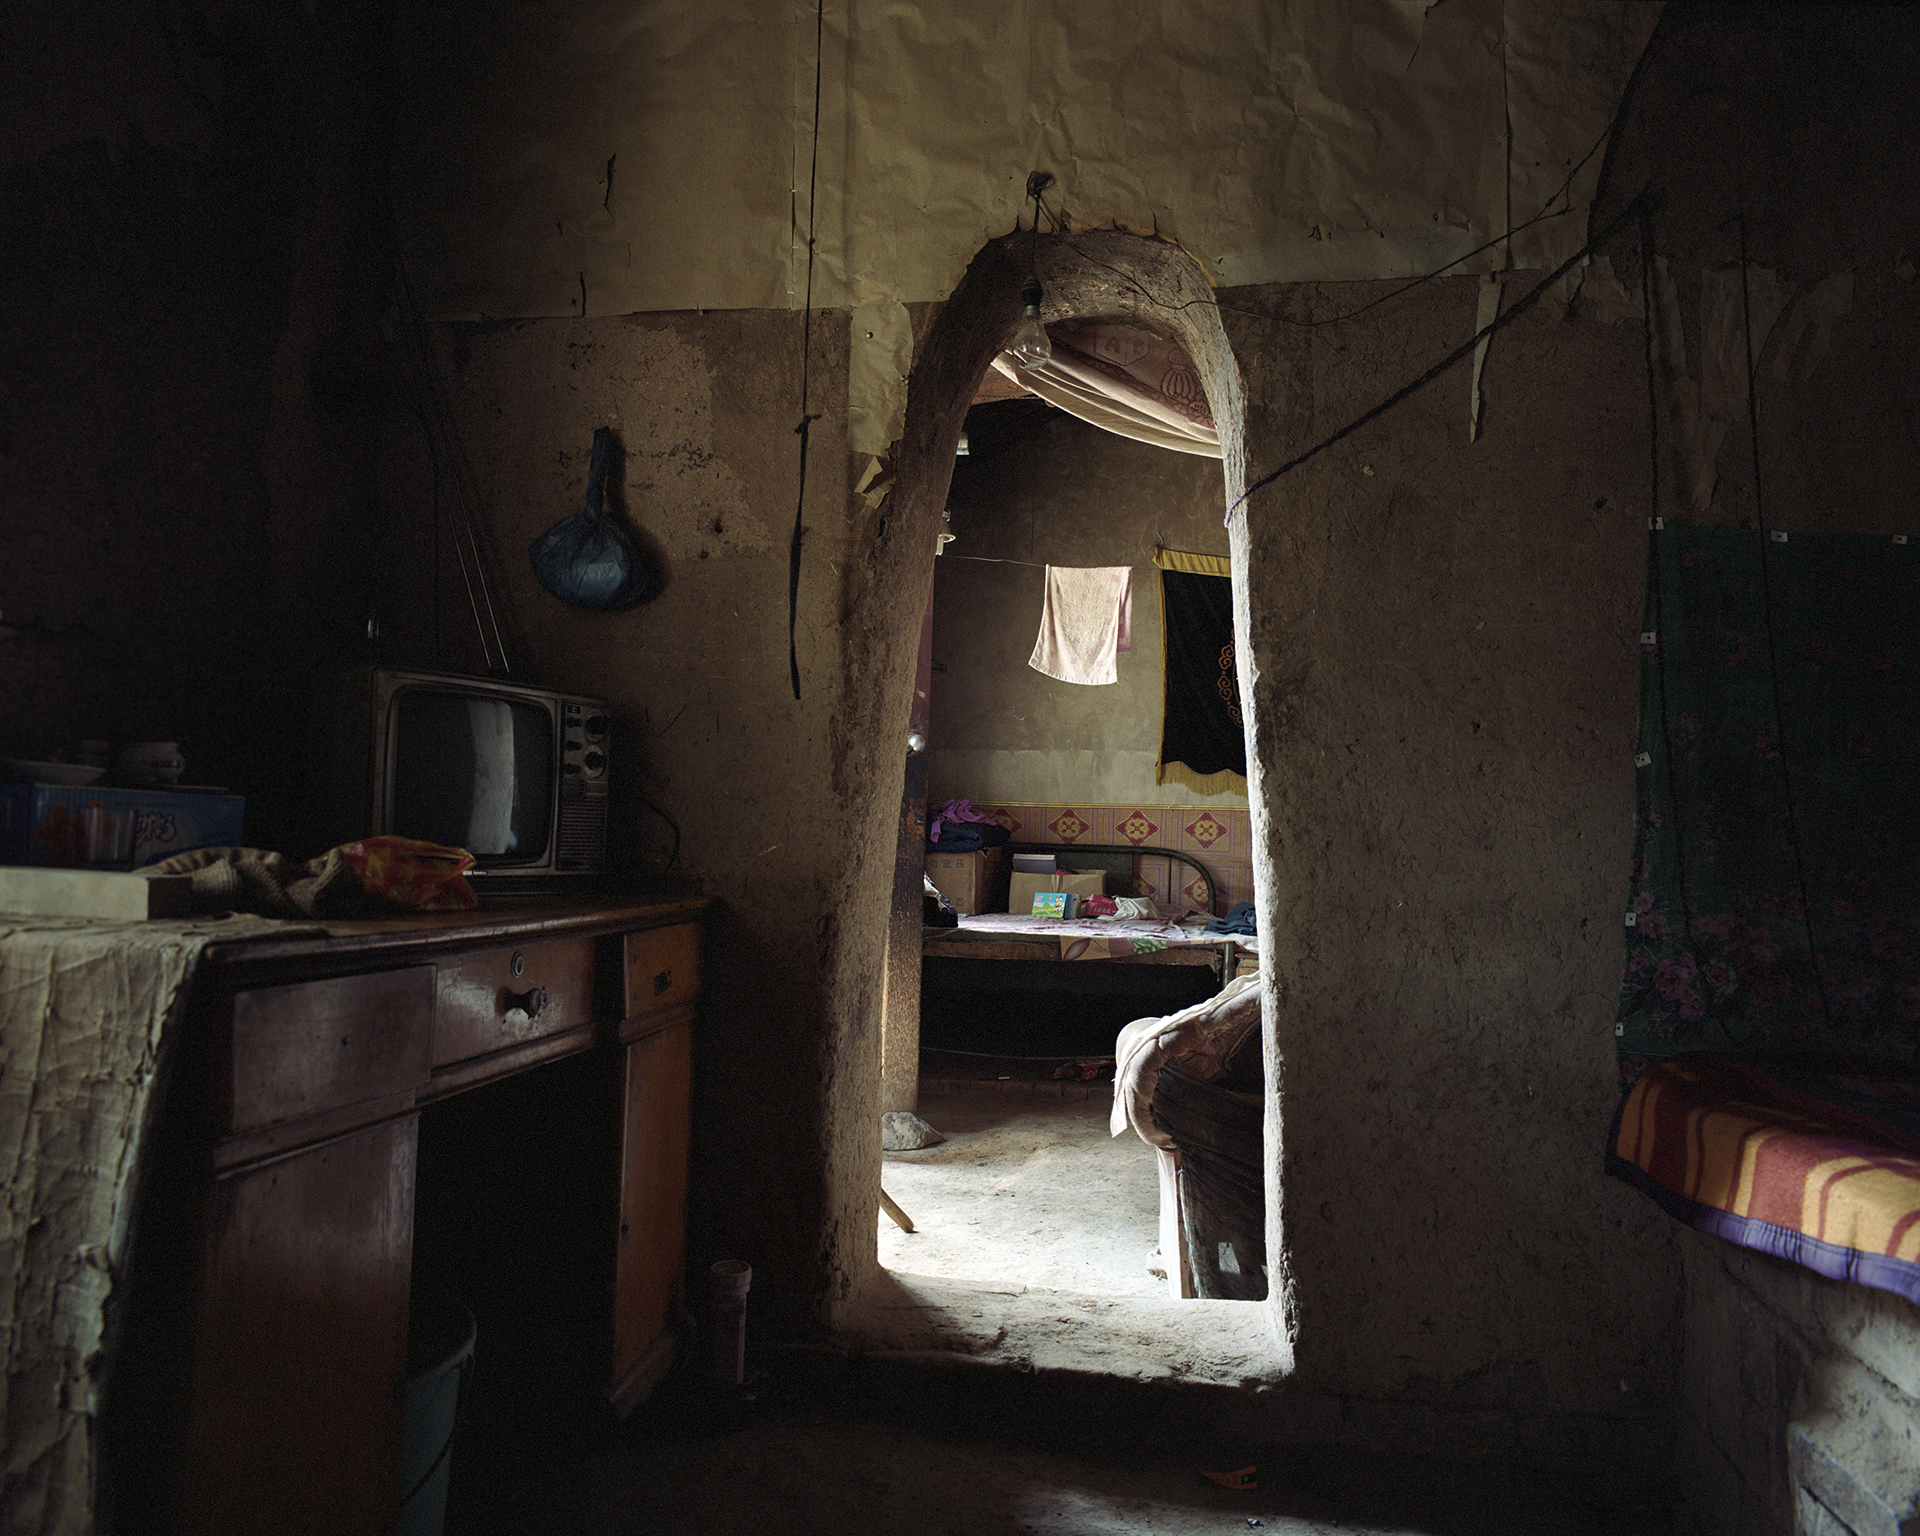 2007, Dawan - this small sideroom will be the new home for the second son .......when the family has saved enough money.